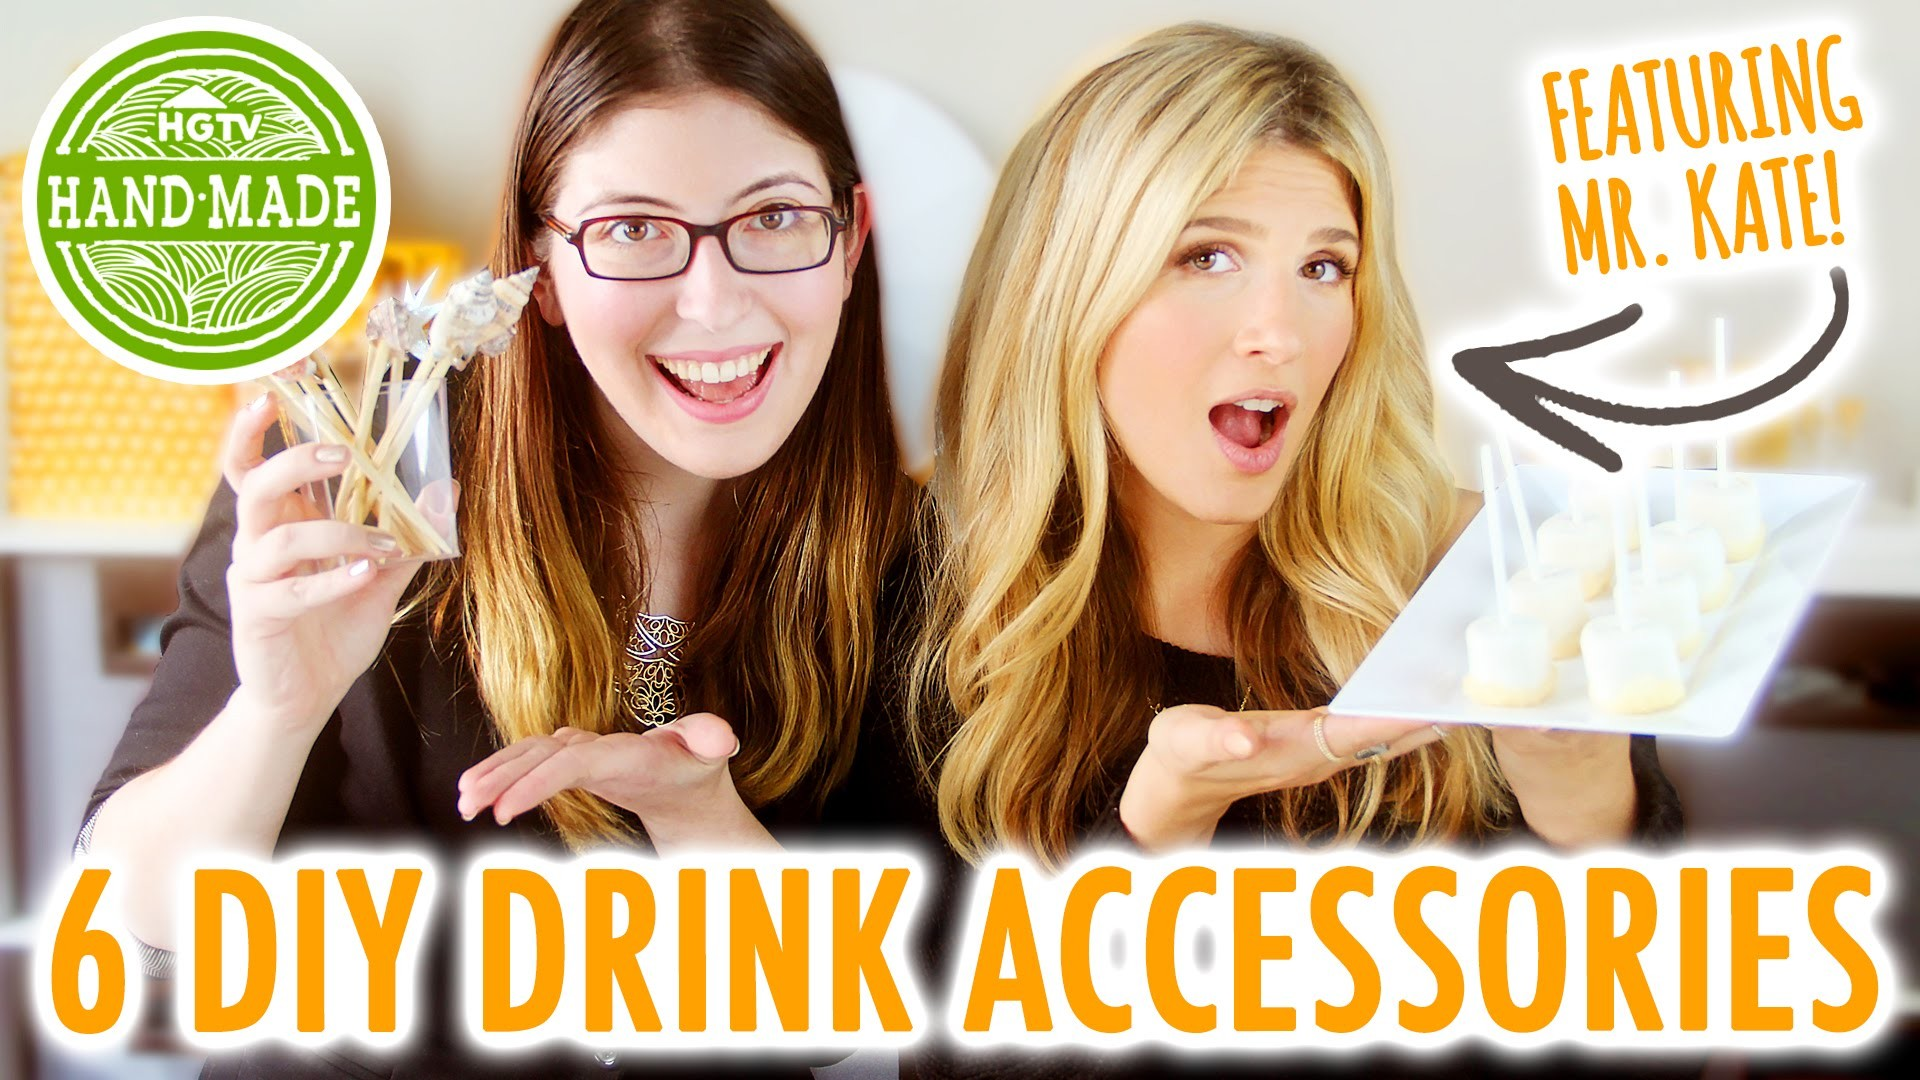 6 Drink Accessories for New Years feat. Mr. Kate - HGTV Handmade